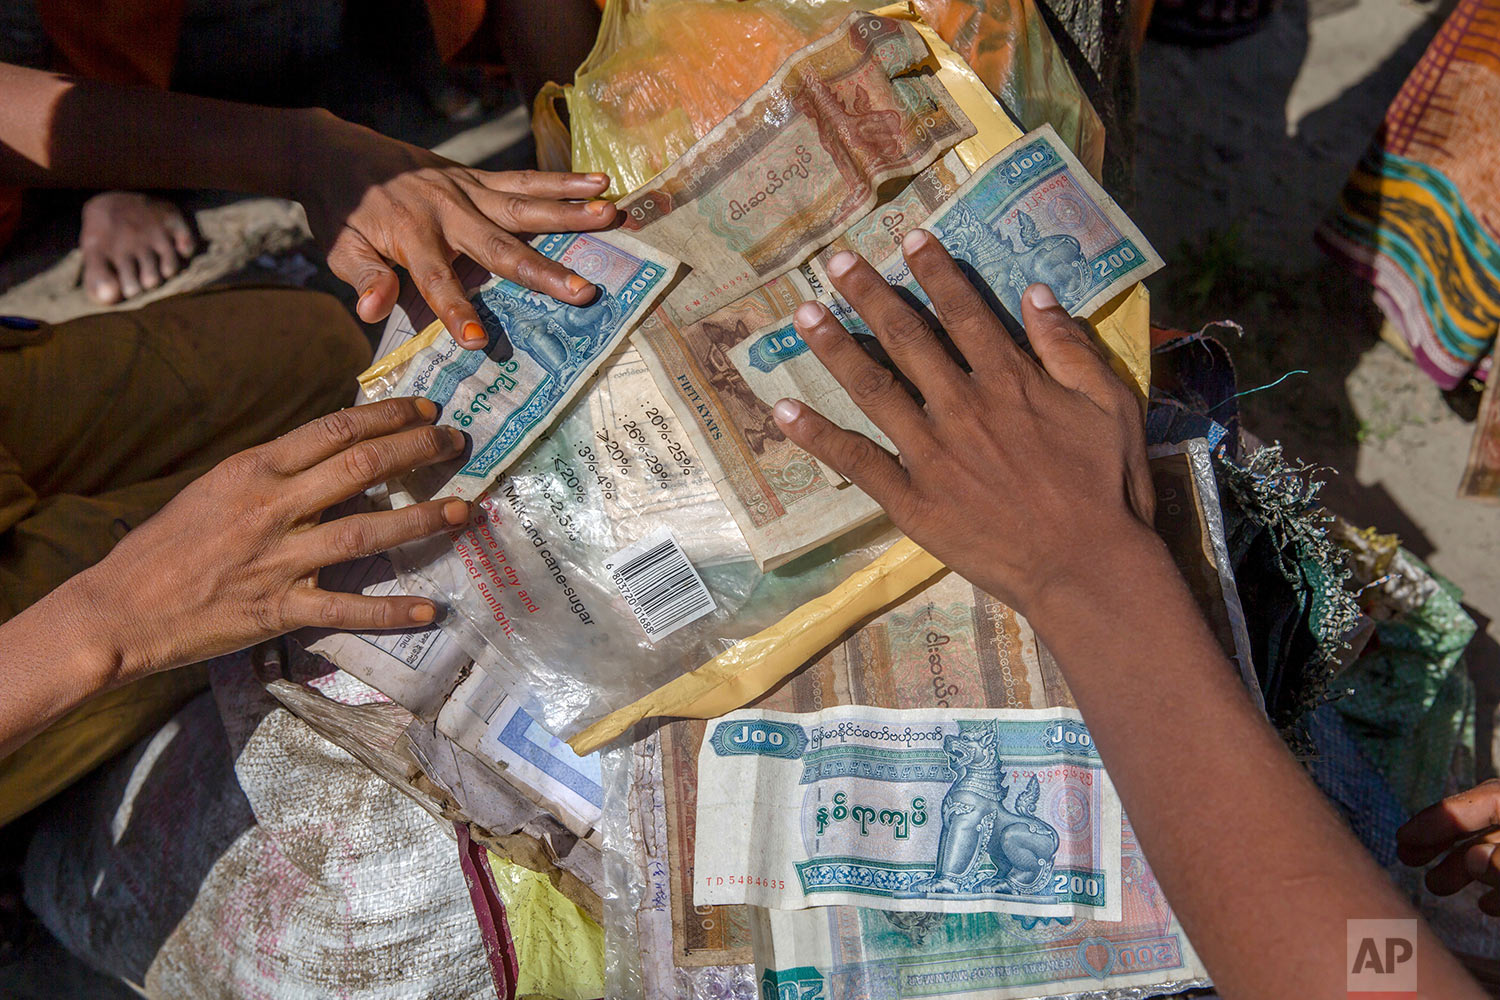 Rohingya Muslim boys, who crossed over from Myanmar into Bangladesh, dry their Myanmarese currency after arriving by boat at Shah Porir Dwip, Bangladesh, Thursday, Sept. 14, 2017. (AP Photo/Dar Yasin)